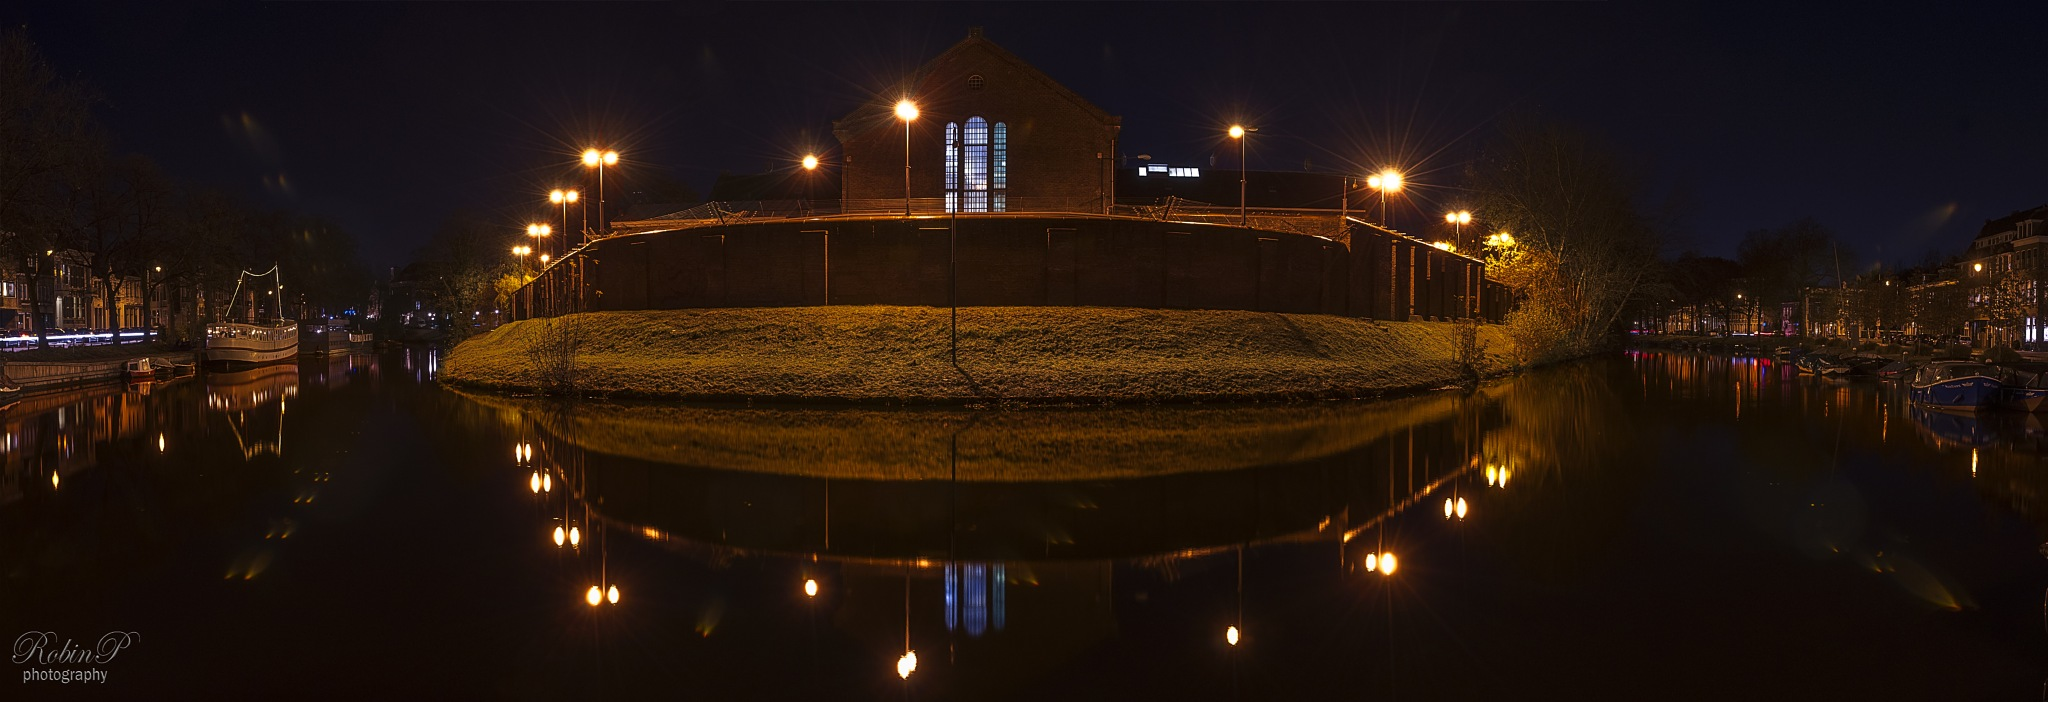 an old Dutch prison at the famous canals. by Robin Pulles